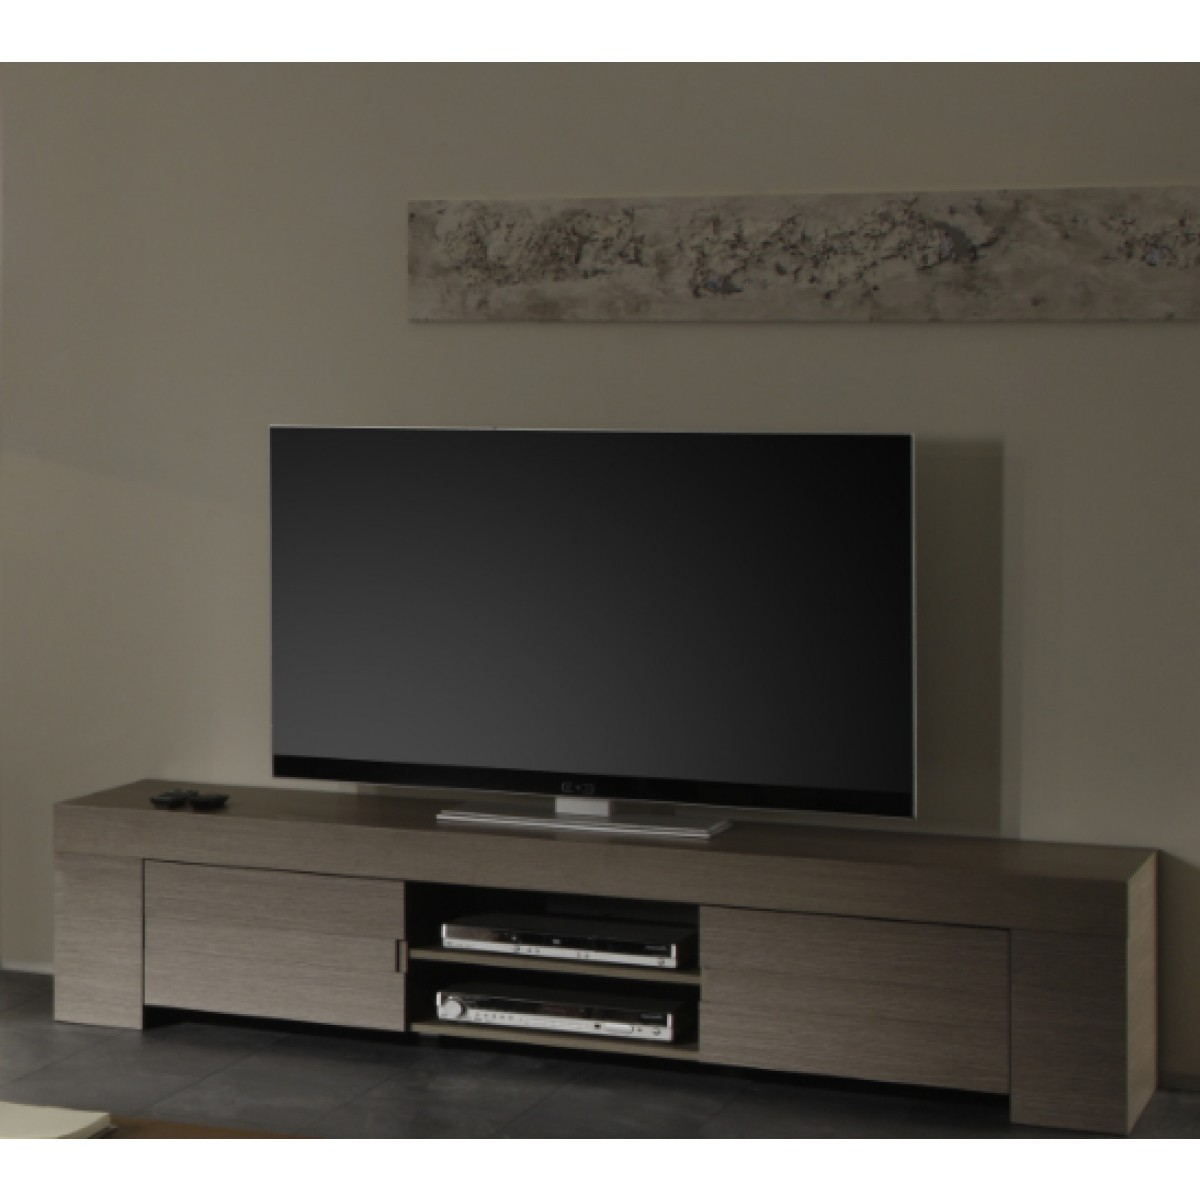 meuble tv contemporain design italien sammlung von design zeichnungen als. Black Bedroom Furniture Sets. Home Design Ideas